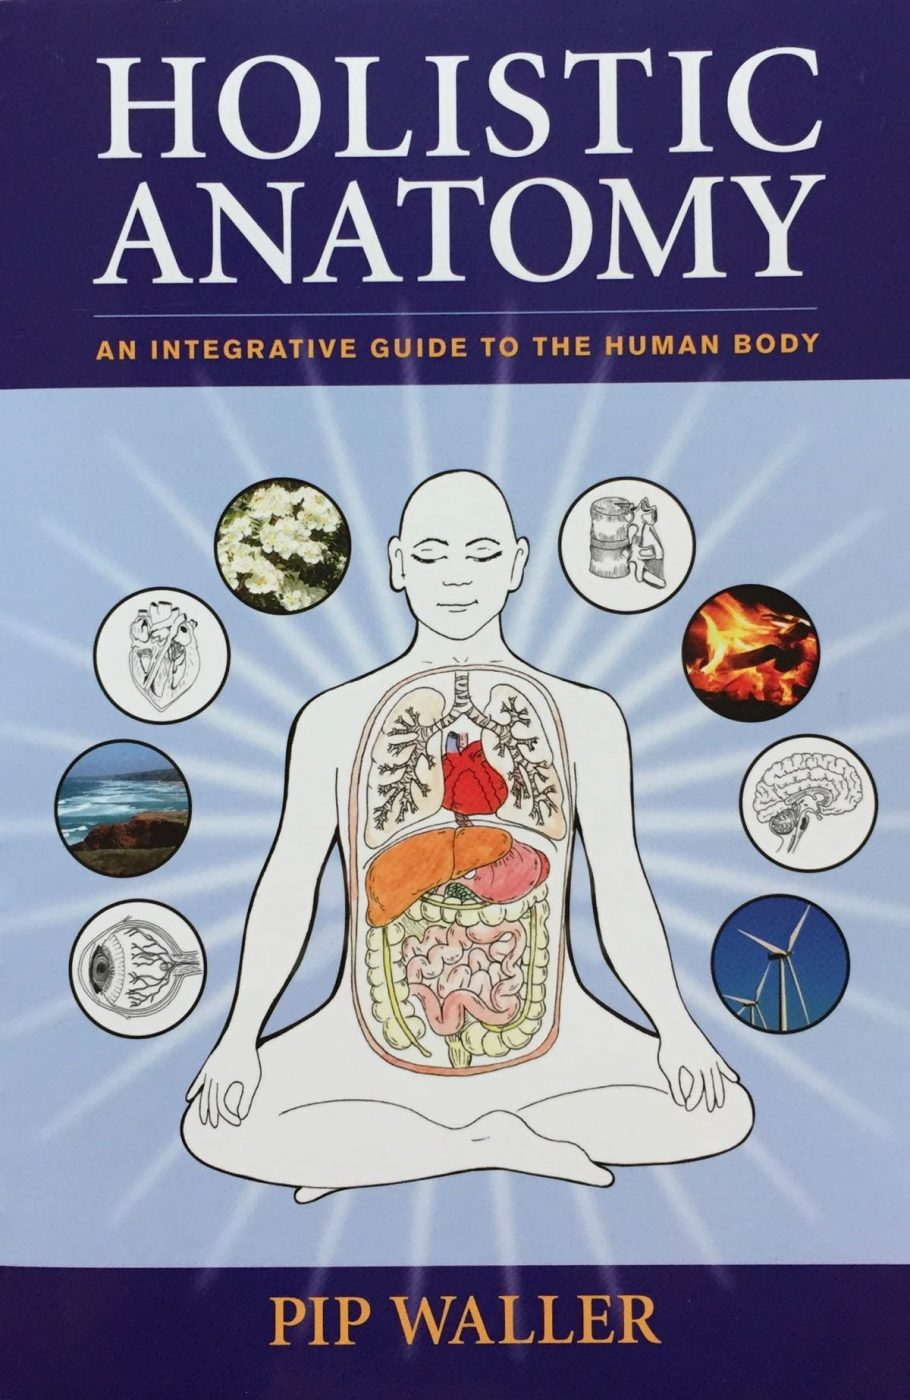 Holistic Anatomy by Pip Waller - Candace Hunter